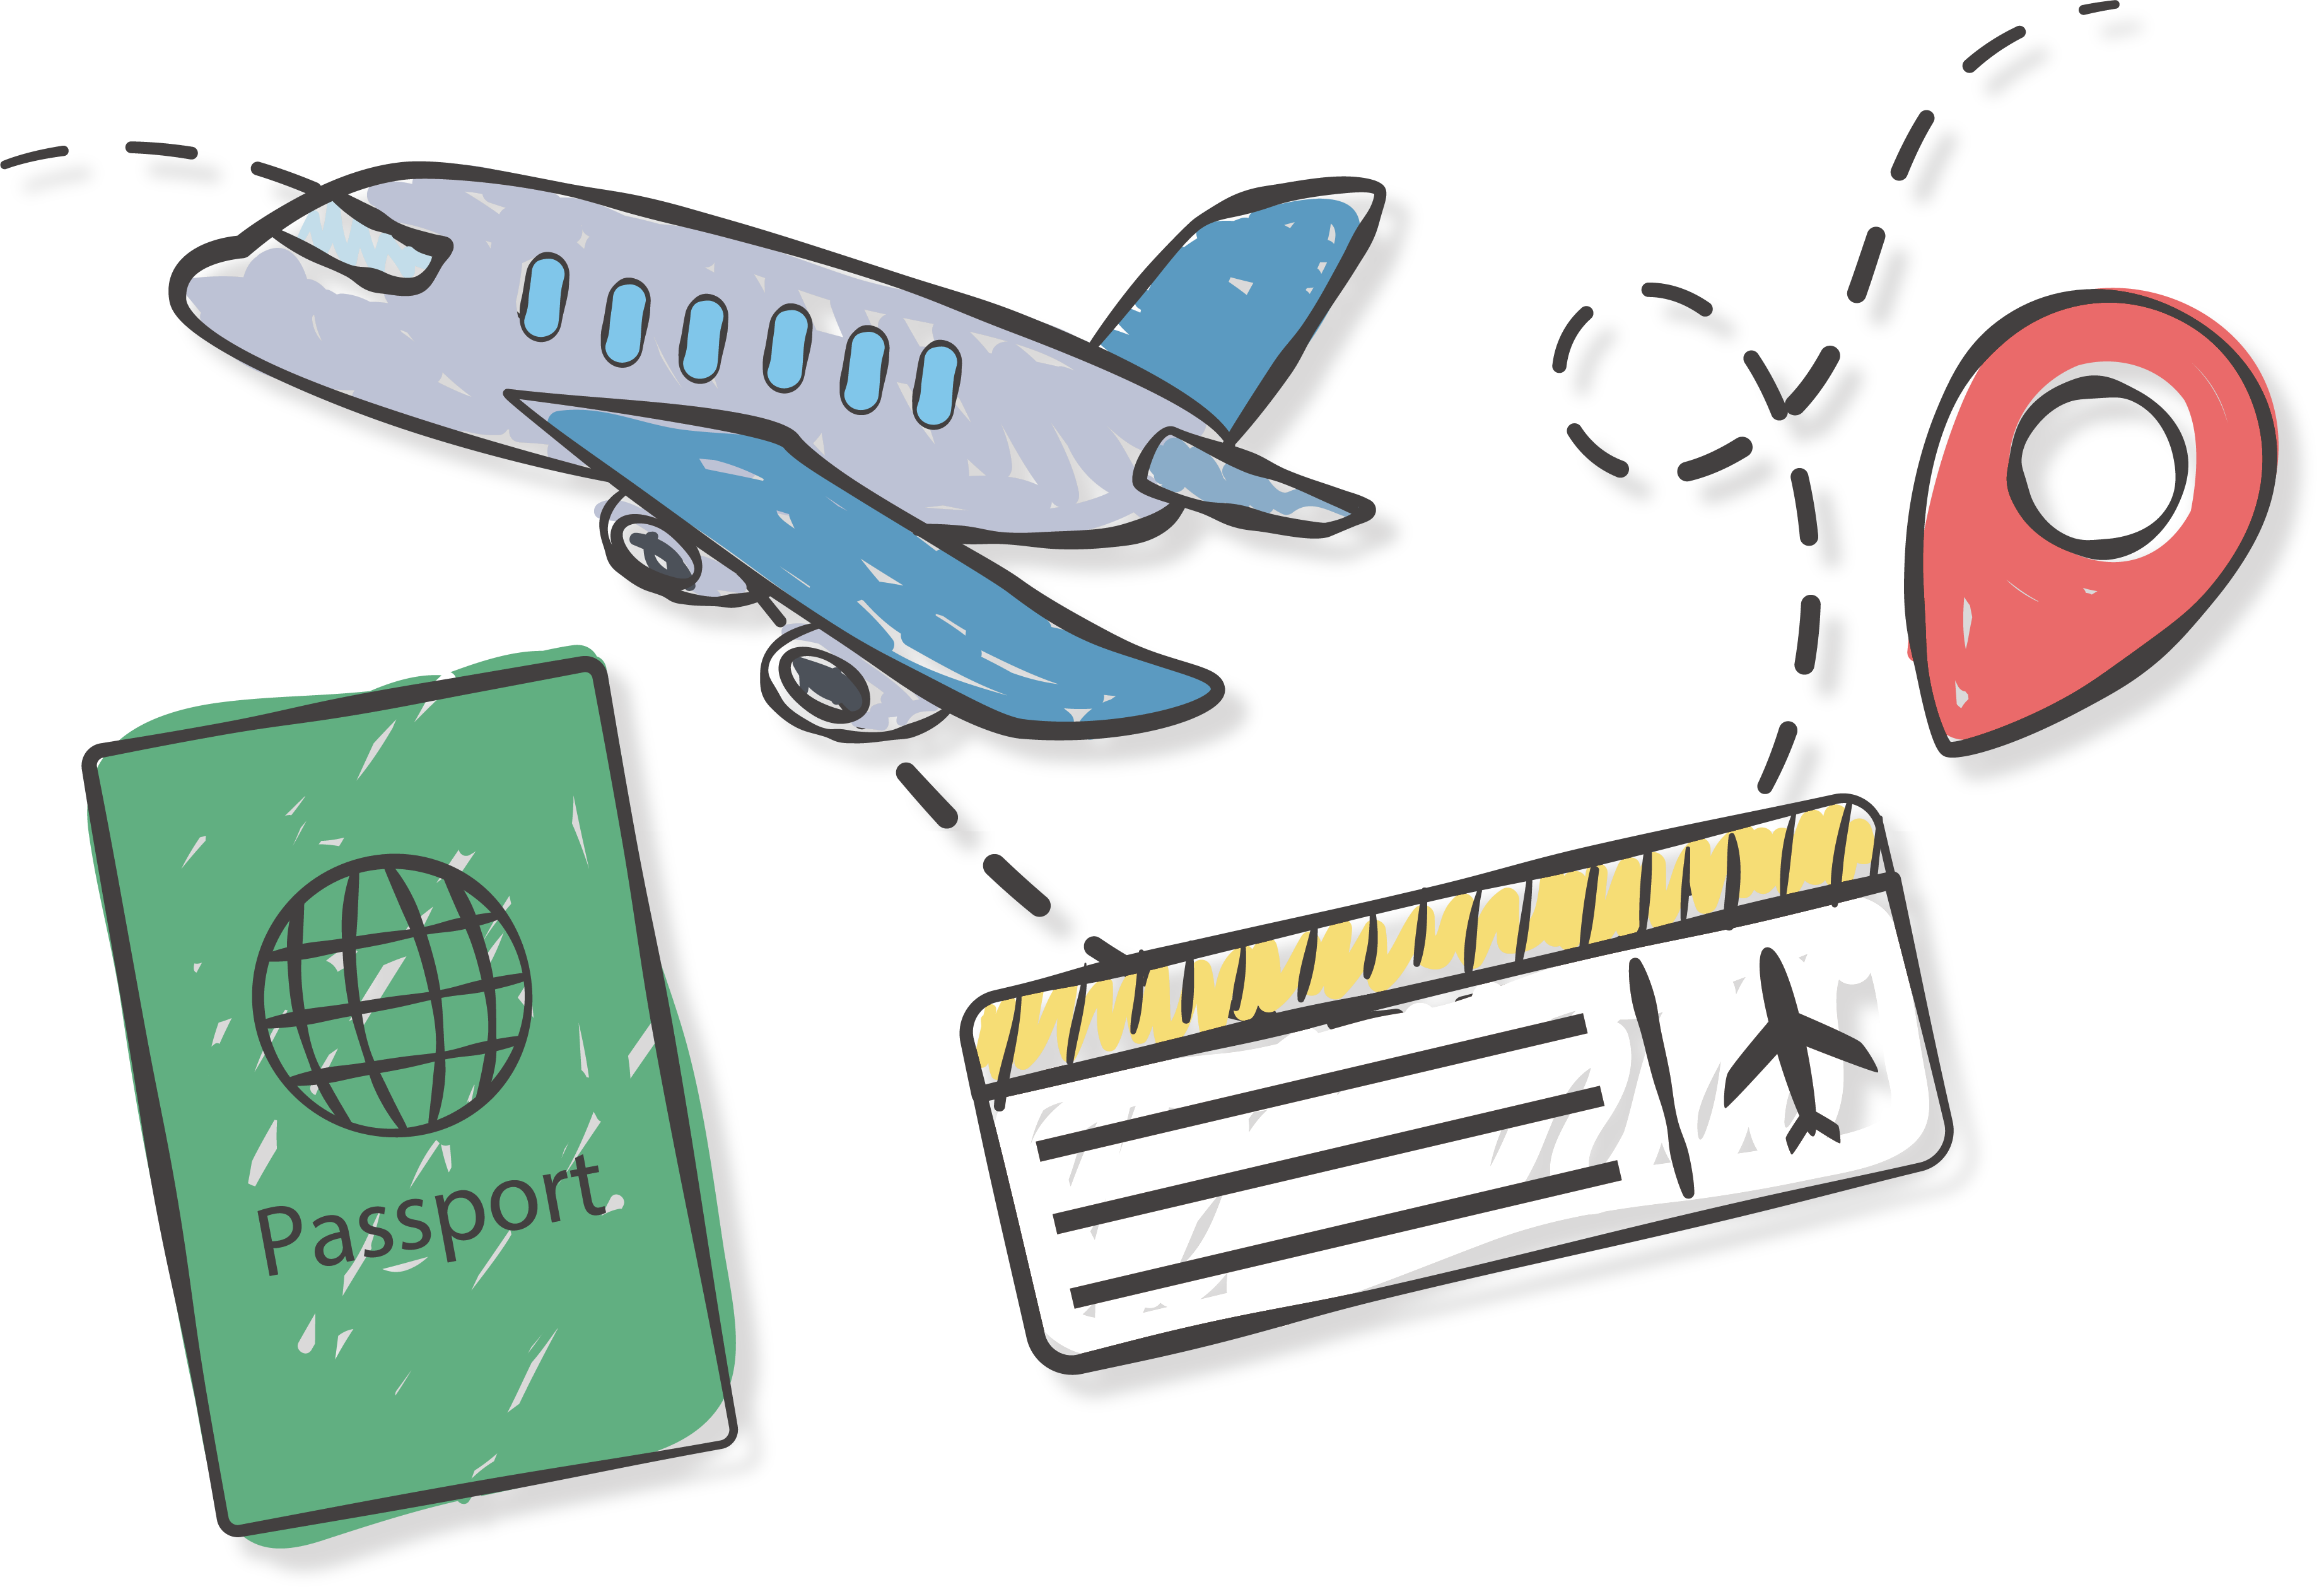 Ticket clipart plane ticket. Airplane airline travel icon